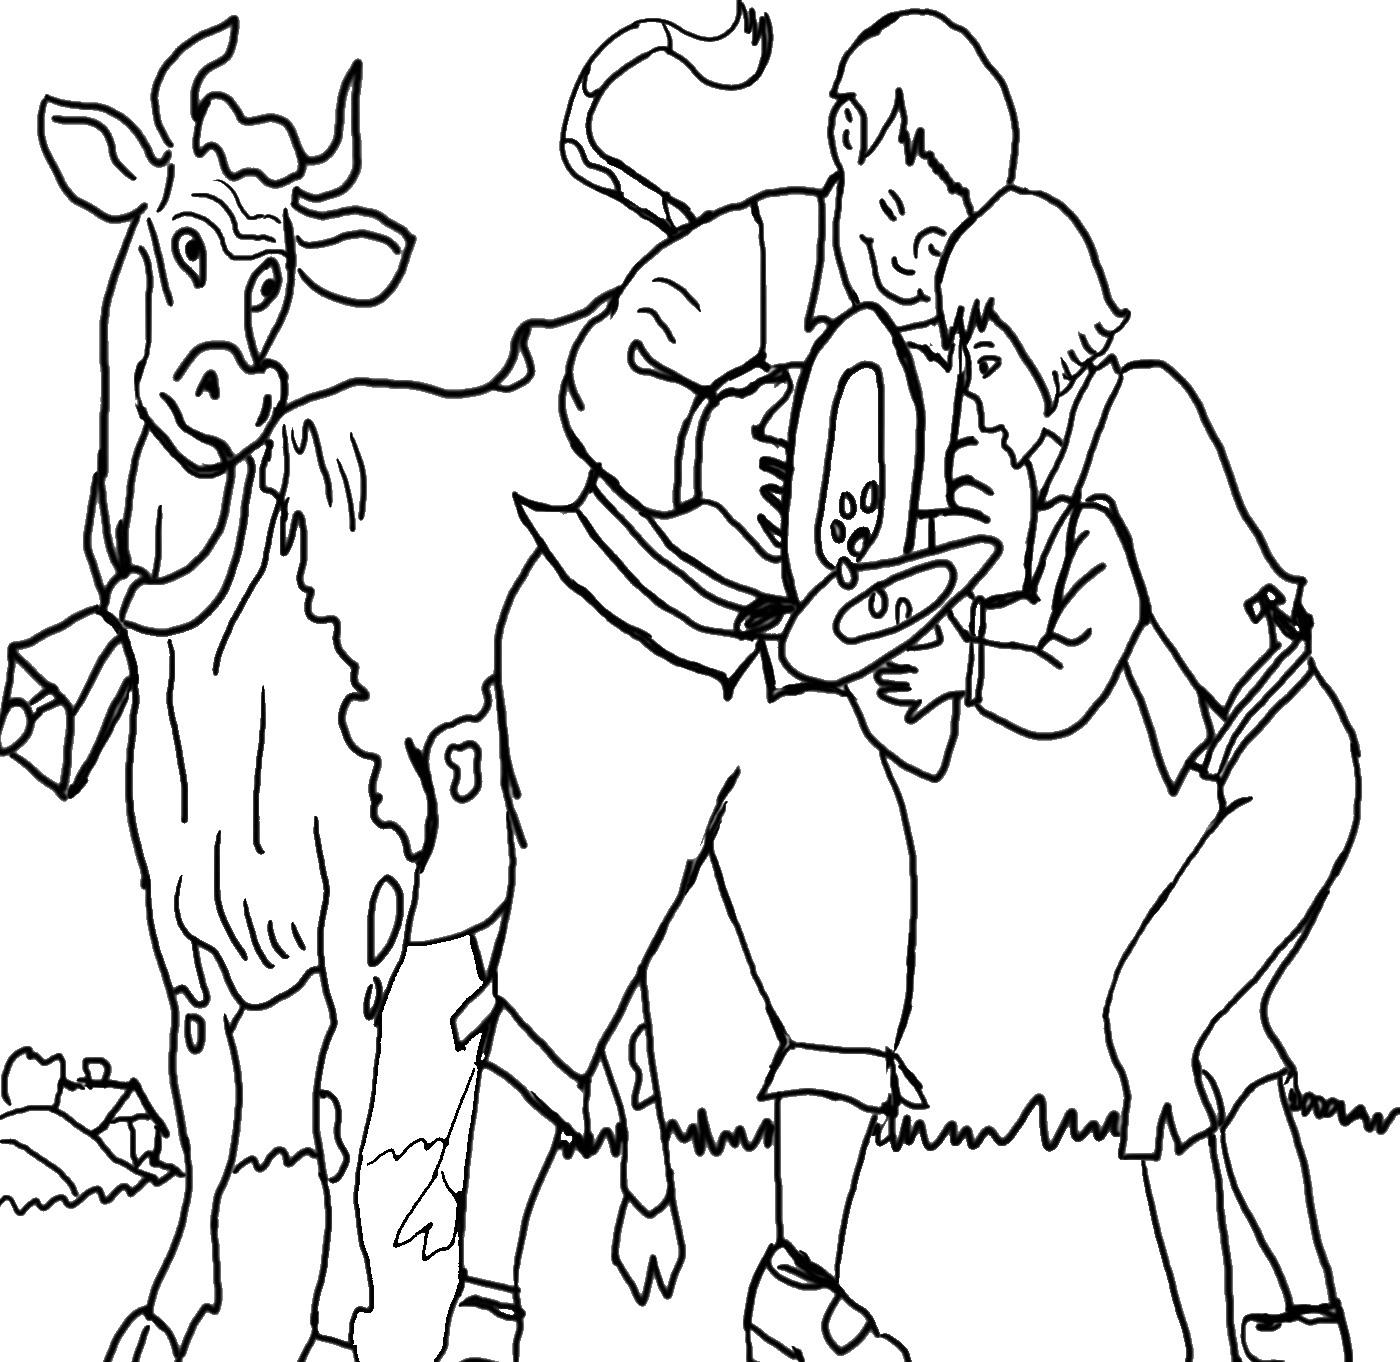 beanstalk coloring pages - photo#36